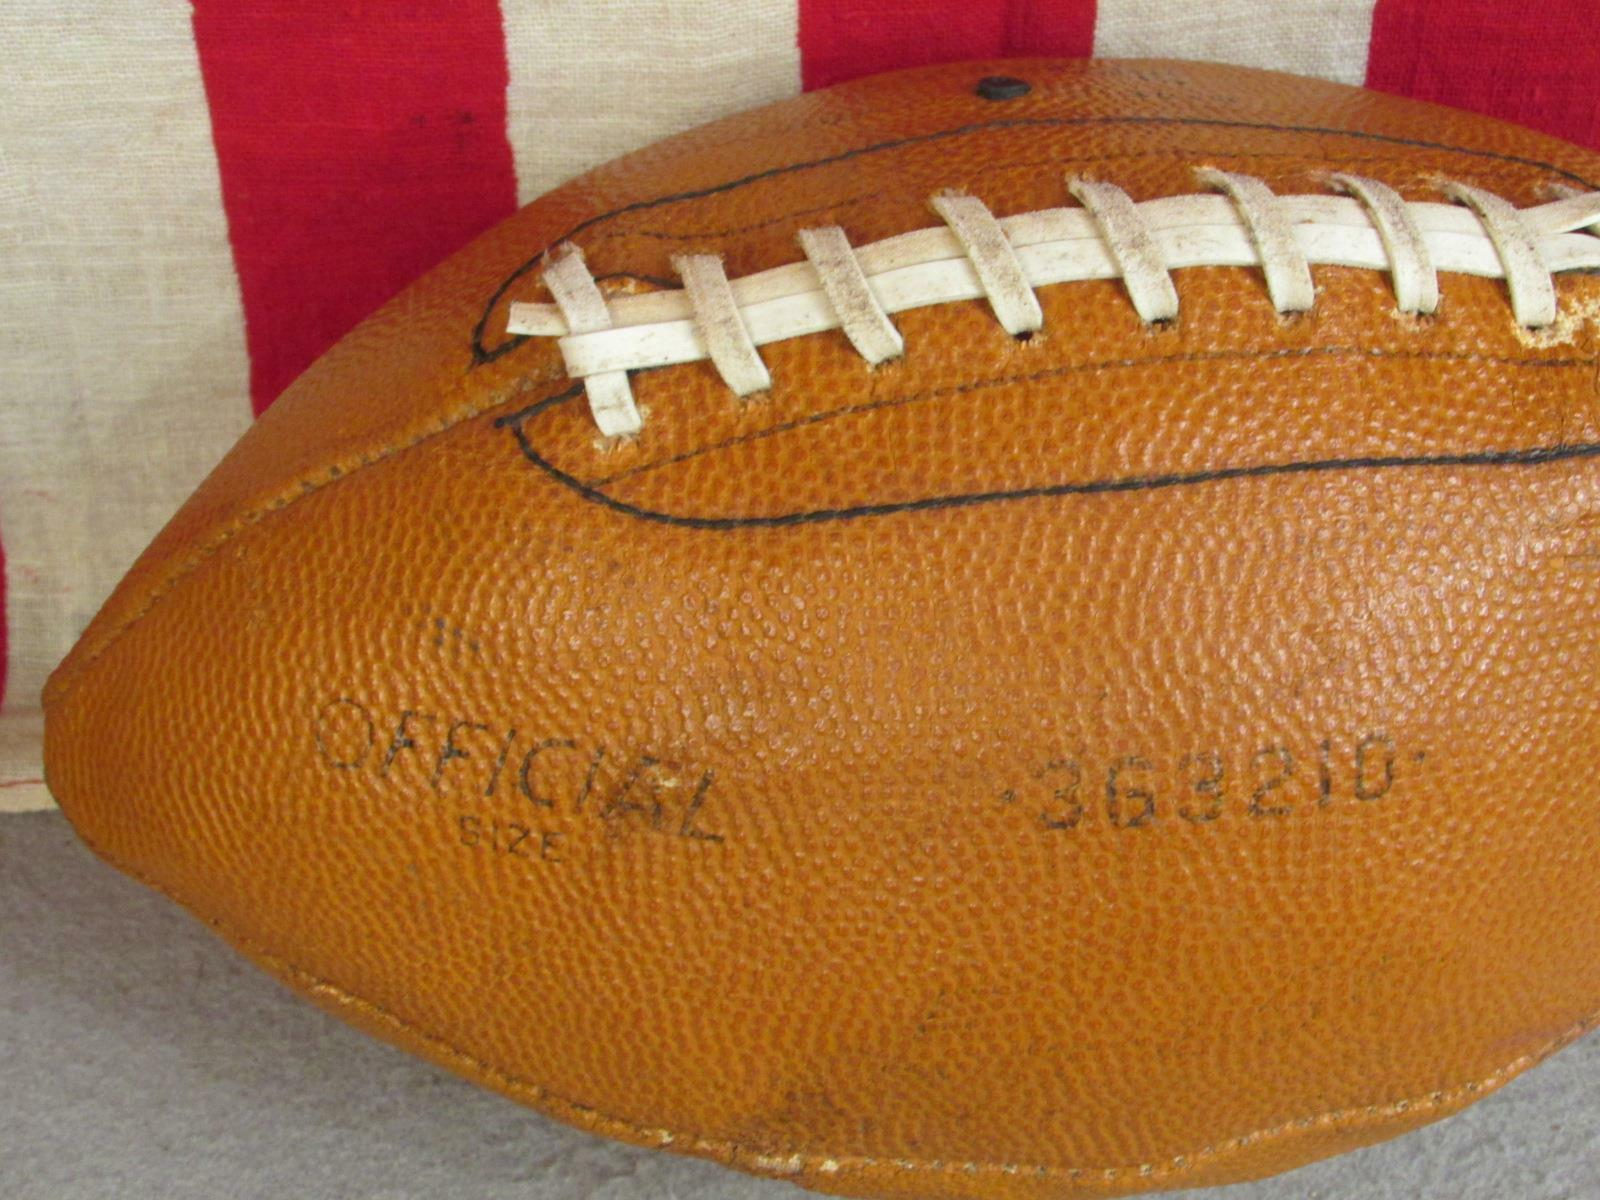 Vintage Scholastic Pelle Official Football w/ Laces Ball Model 363210 Display Ball Laces 36217b